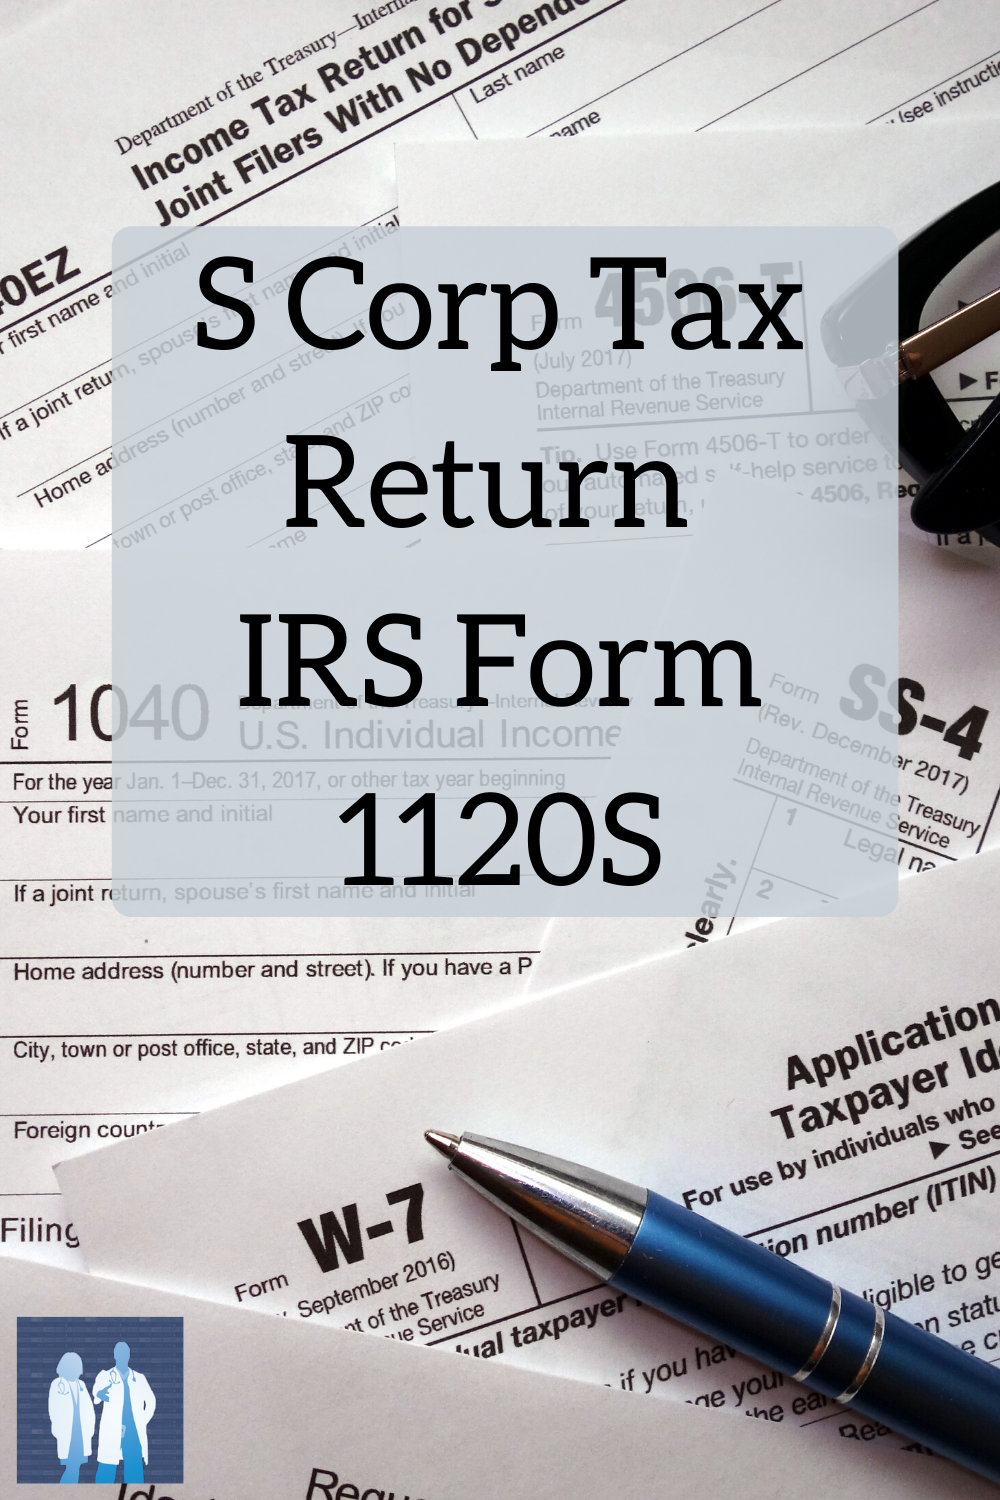 S Corp Tax Return Irs Form 1120s If You Want To Have A Better Understanding Of How Taxes Work And How To Maximize Deductions Take In 2020 Irs Forms Tax Return Tax